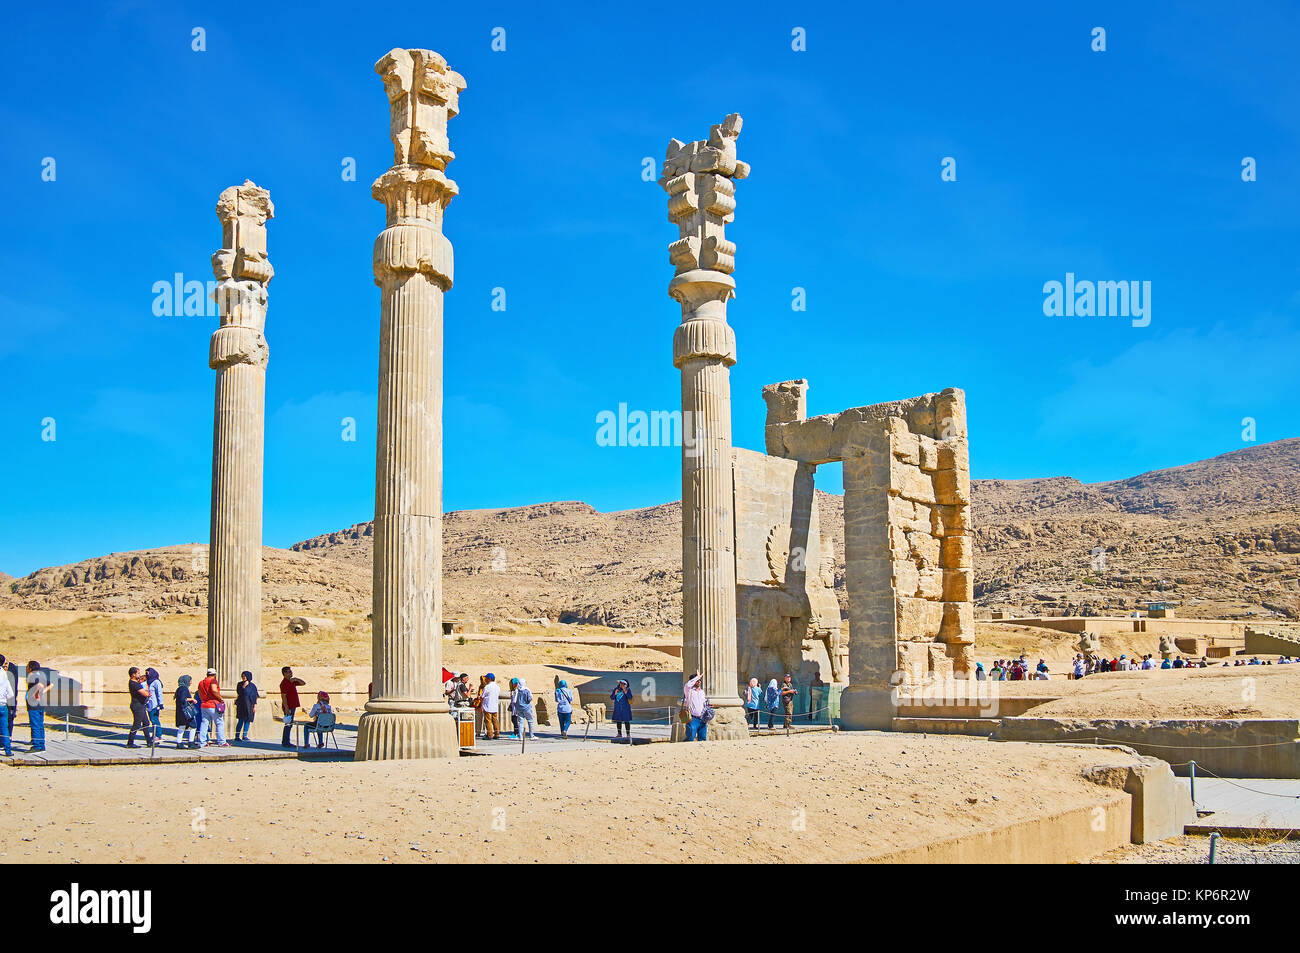 PERSEPOLIS, IRAN - OCTOBER 13, 2017: The tourists pass through the ruins of All Nations Gate (Xerxes Gate), Persepolis Stock Photo